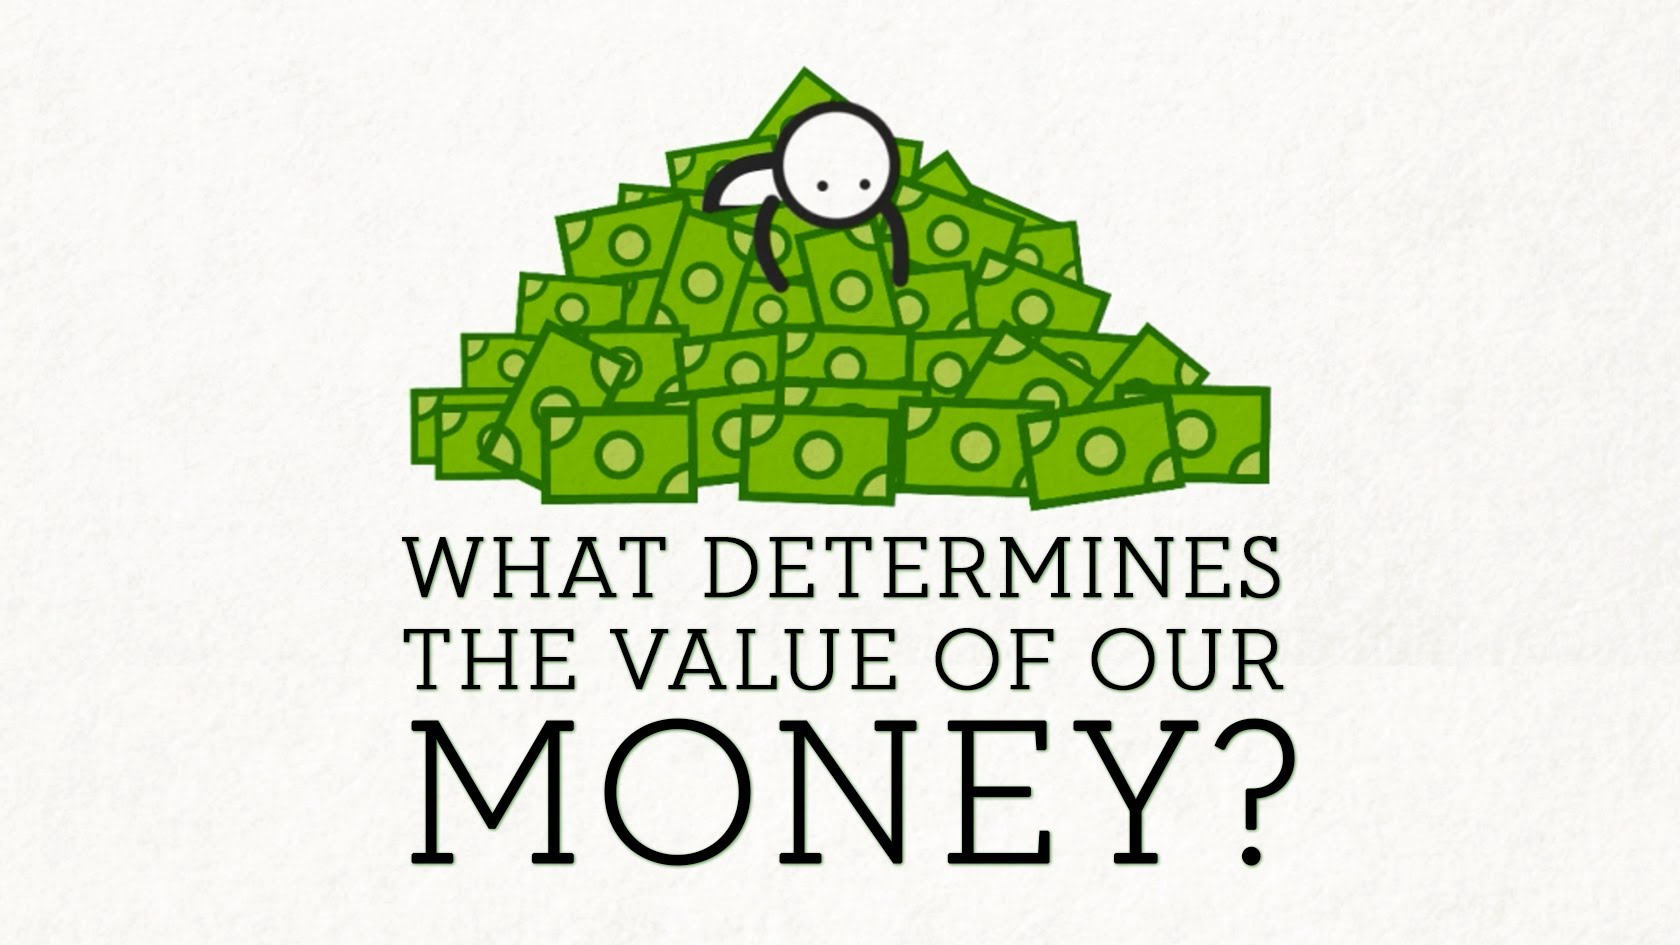 A Fascinating TED-Ed Animation About the Economics of Paper Currency